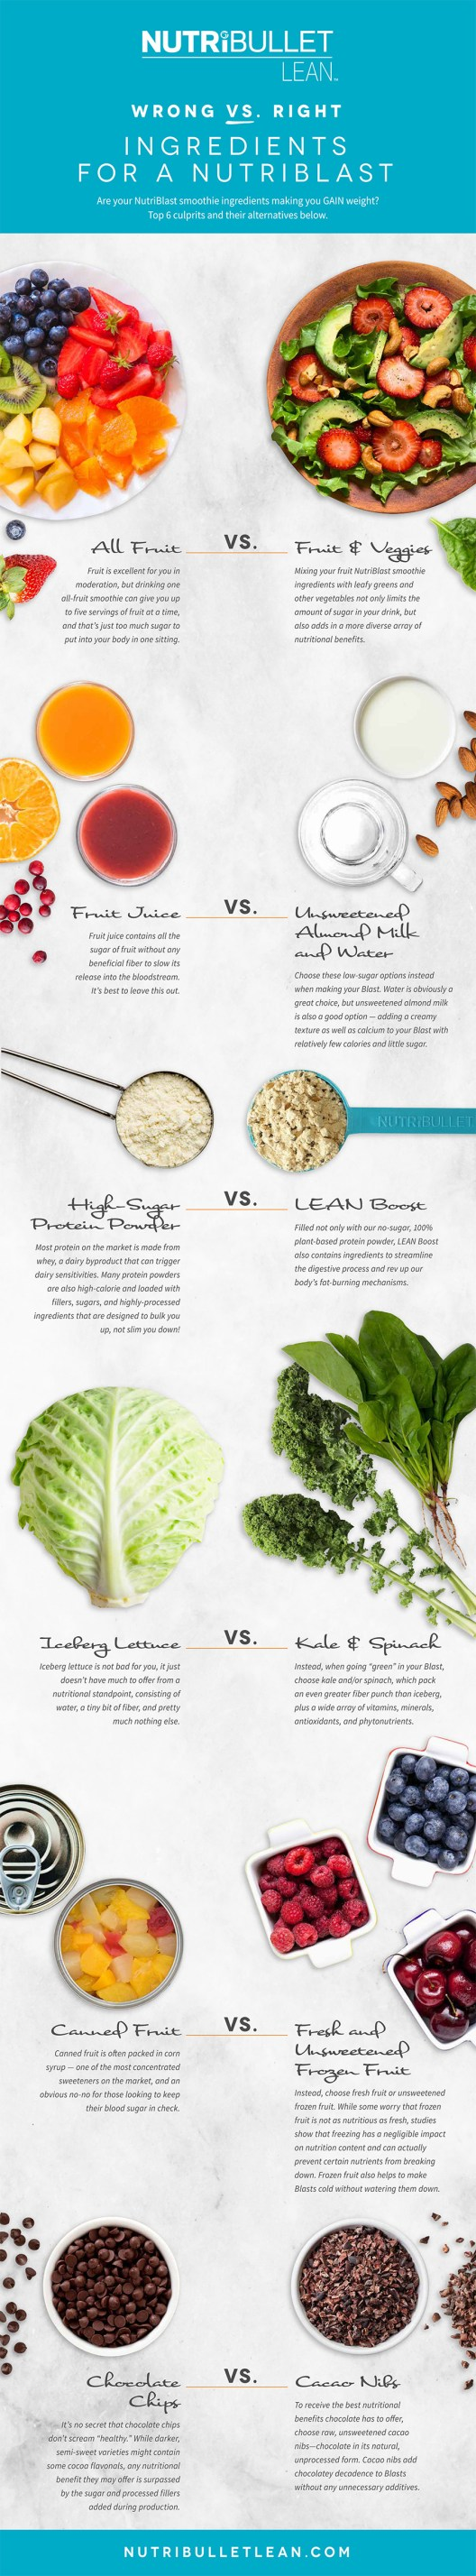 wrong-vs-right-ingredients-for-a-nutriblast